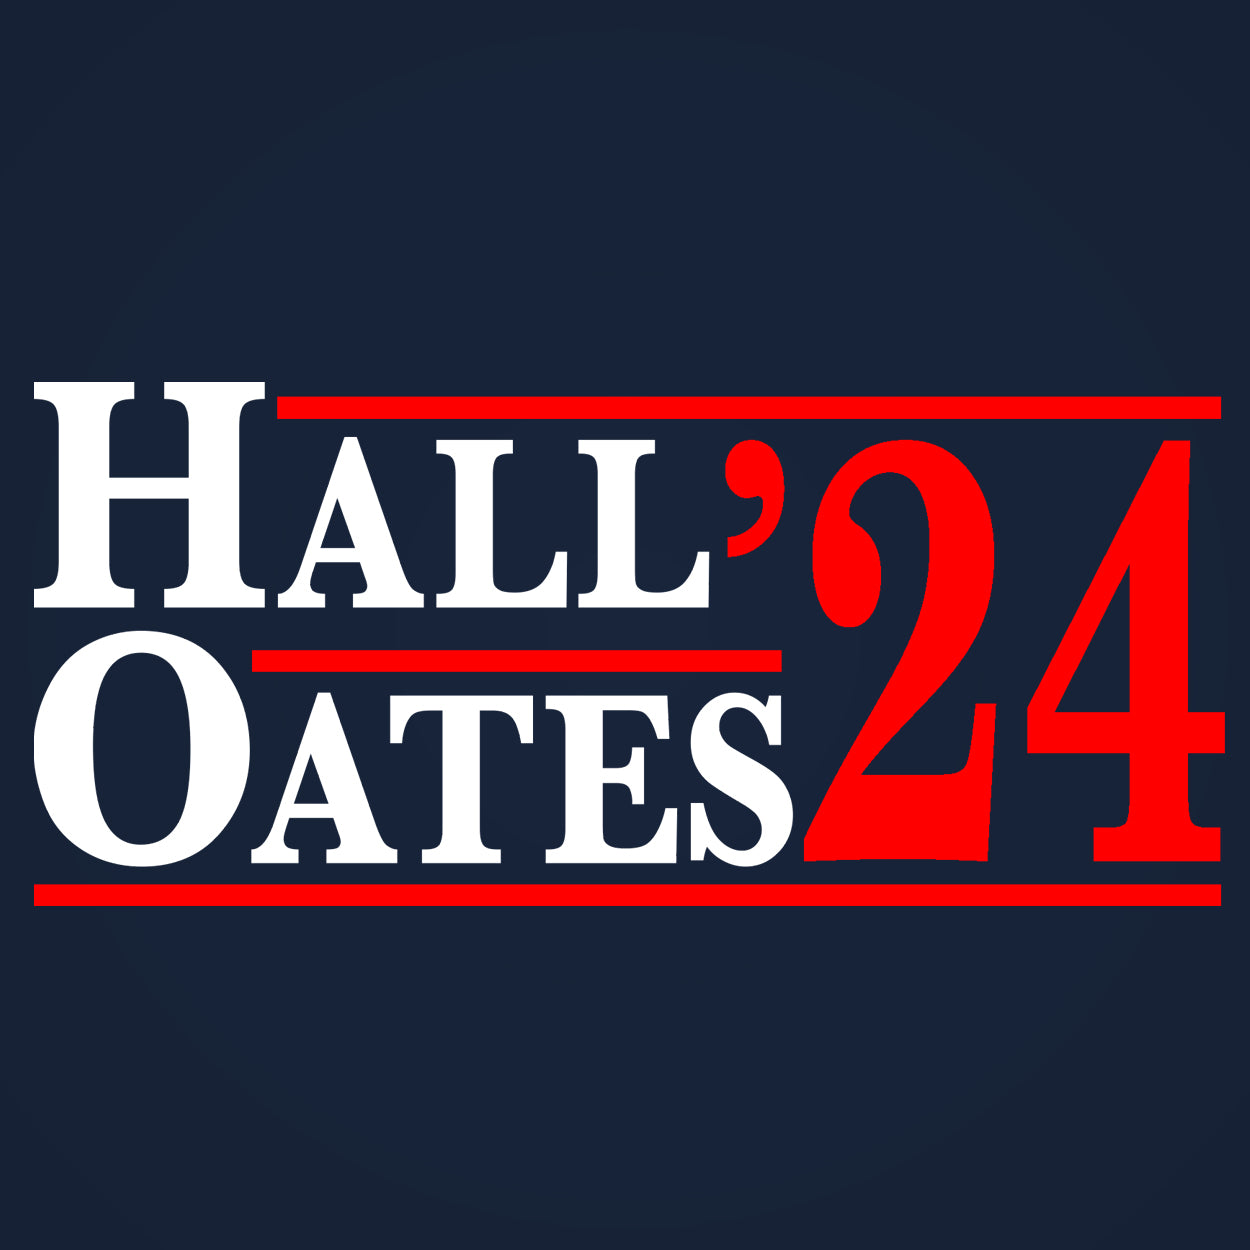 HALL and OATES 2024 Election